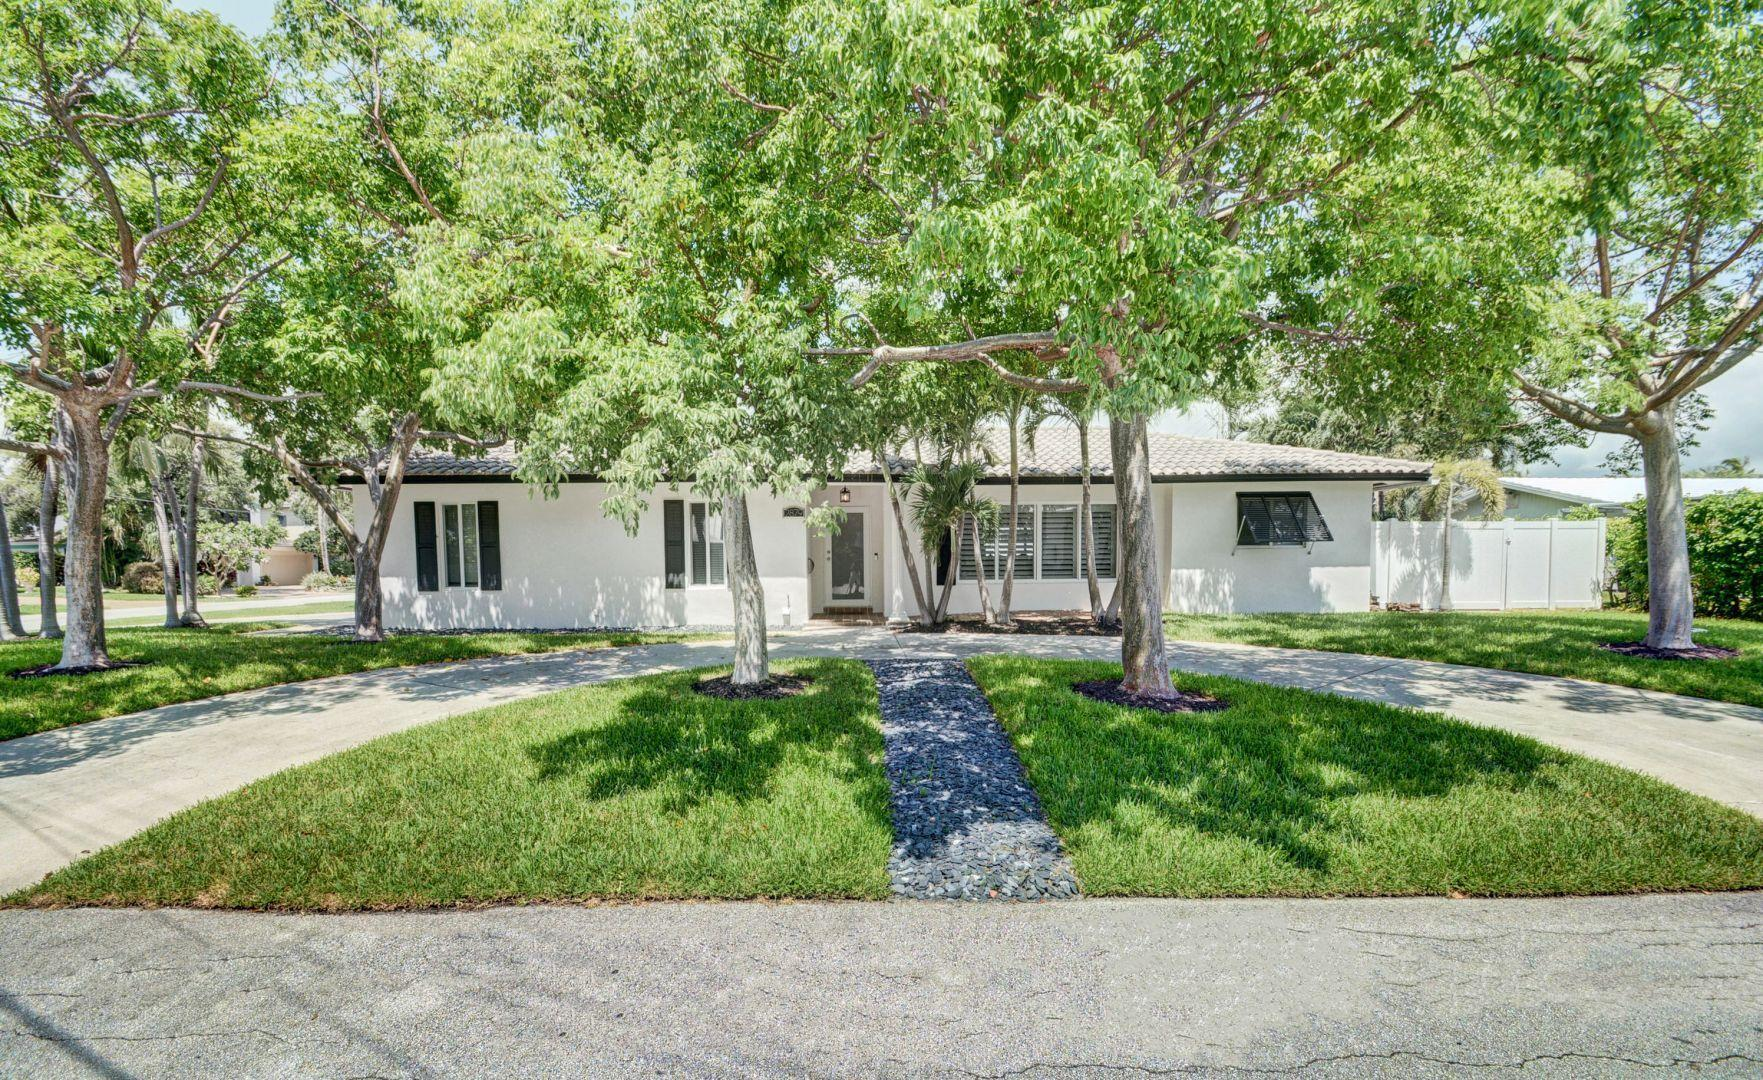 Home for sale in Lake Placid Lighthouse Point Florida